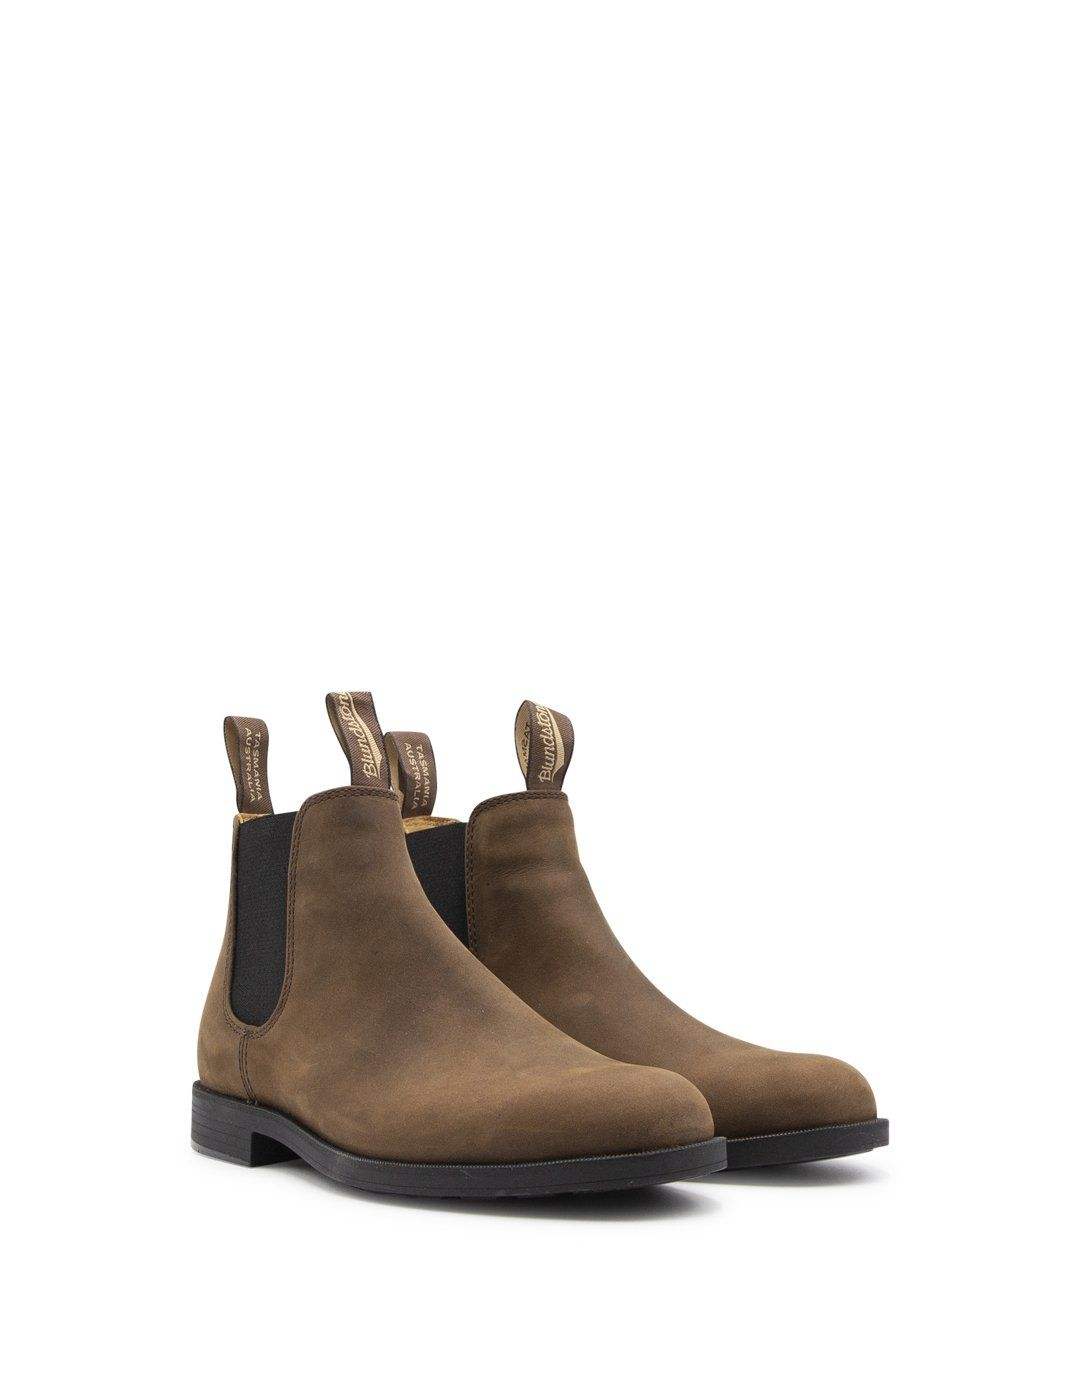 BLUNDSTONE Leathers BLUNDSTONE MEN'S BROWN LEATHER ANKLE BOOTS